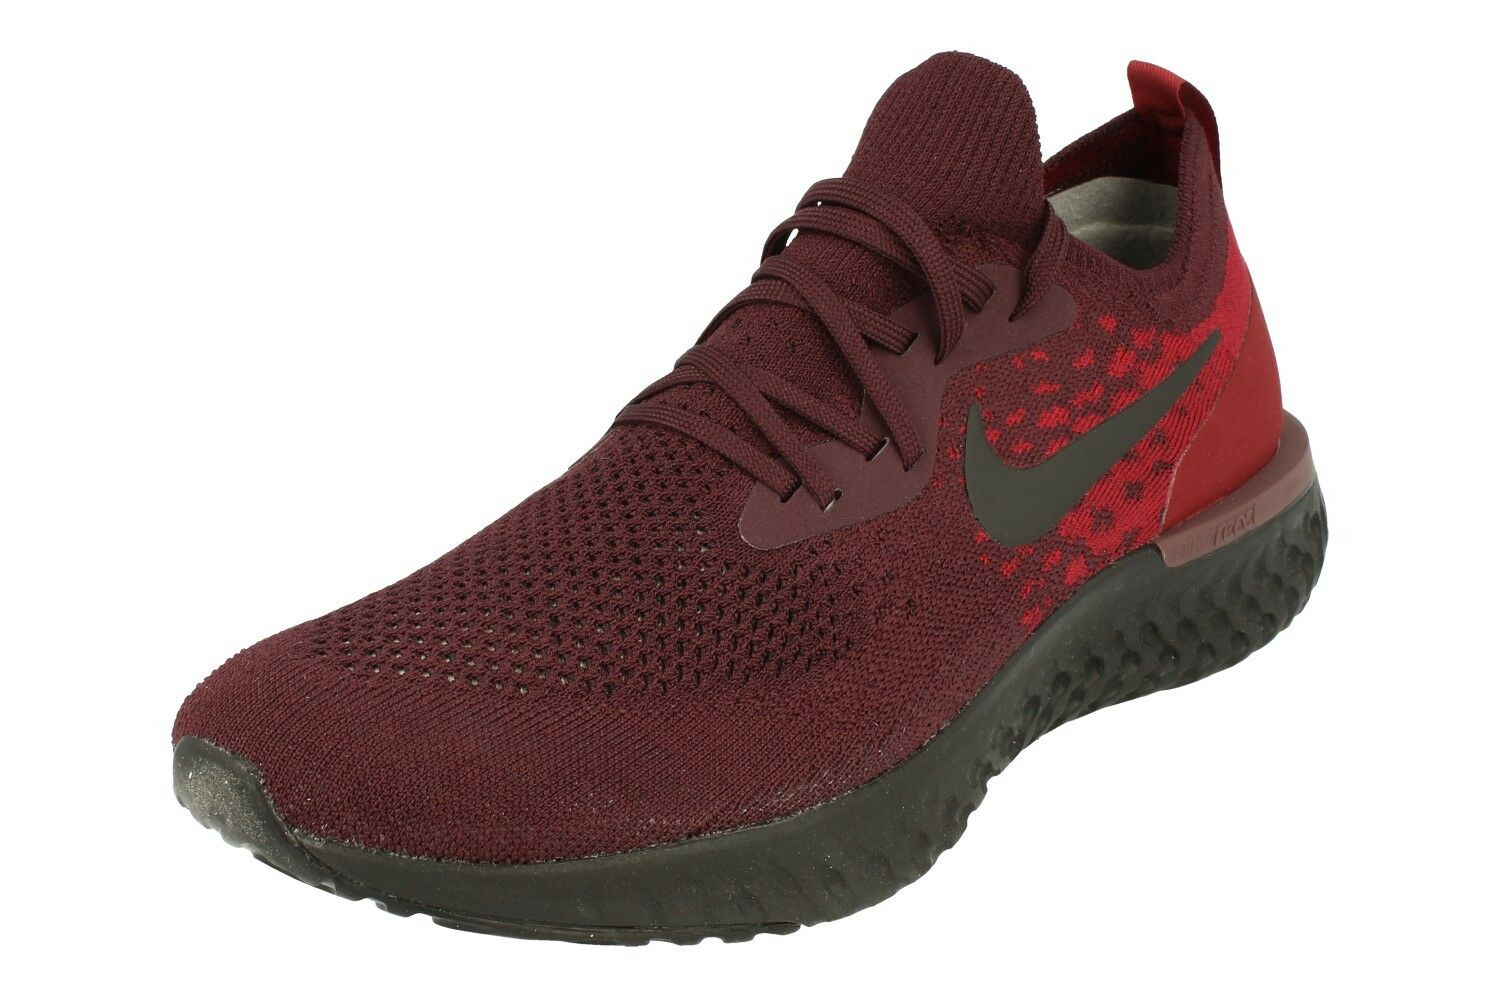 Nike Epic React Flyknit Mens Running Trainers At0054 Sneakers shoes 600